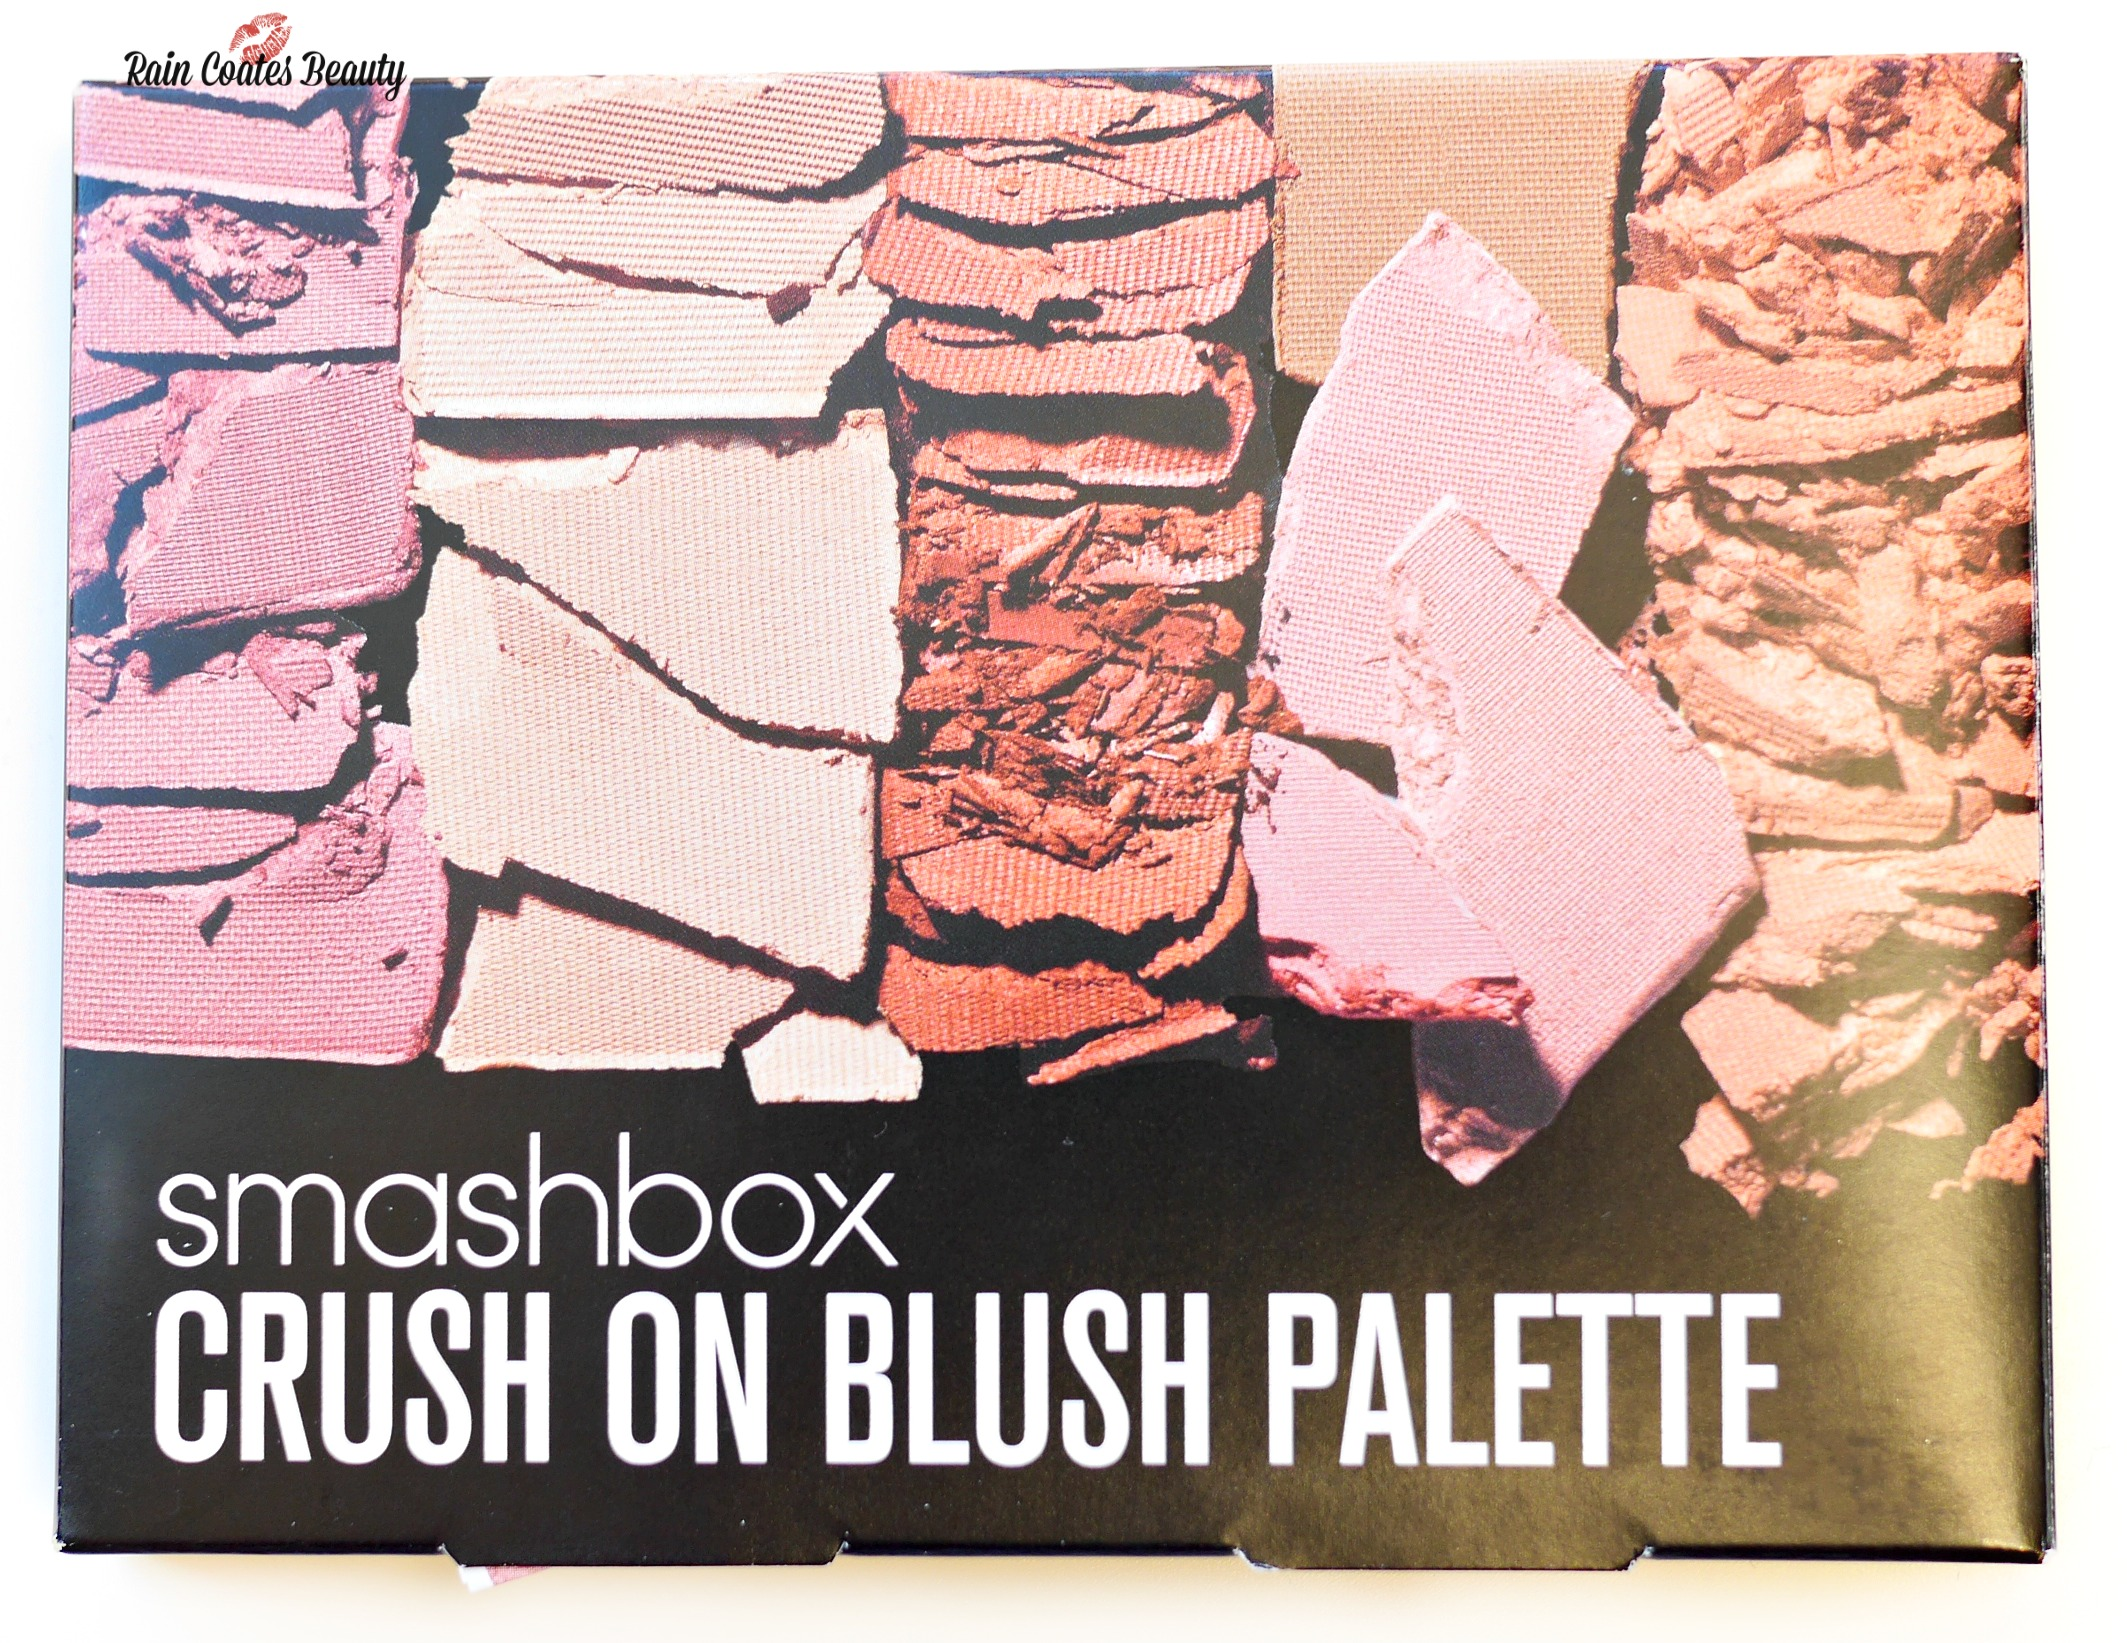 Smashbox Crush On Blush Palette Review